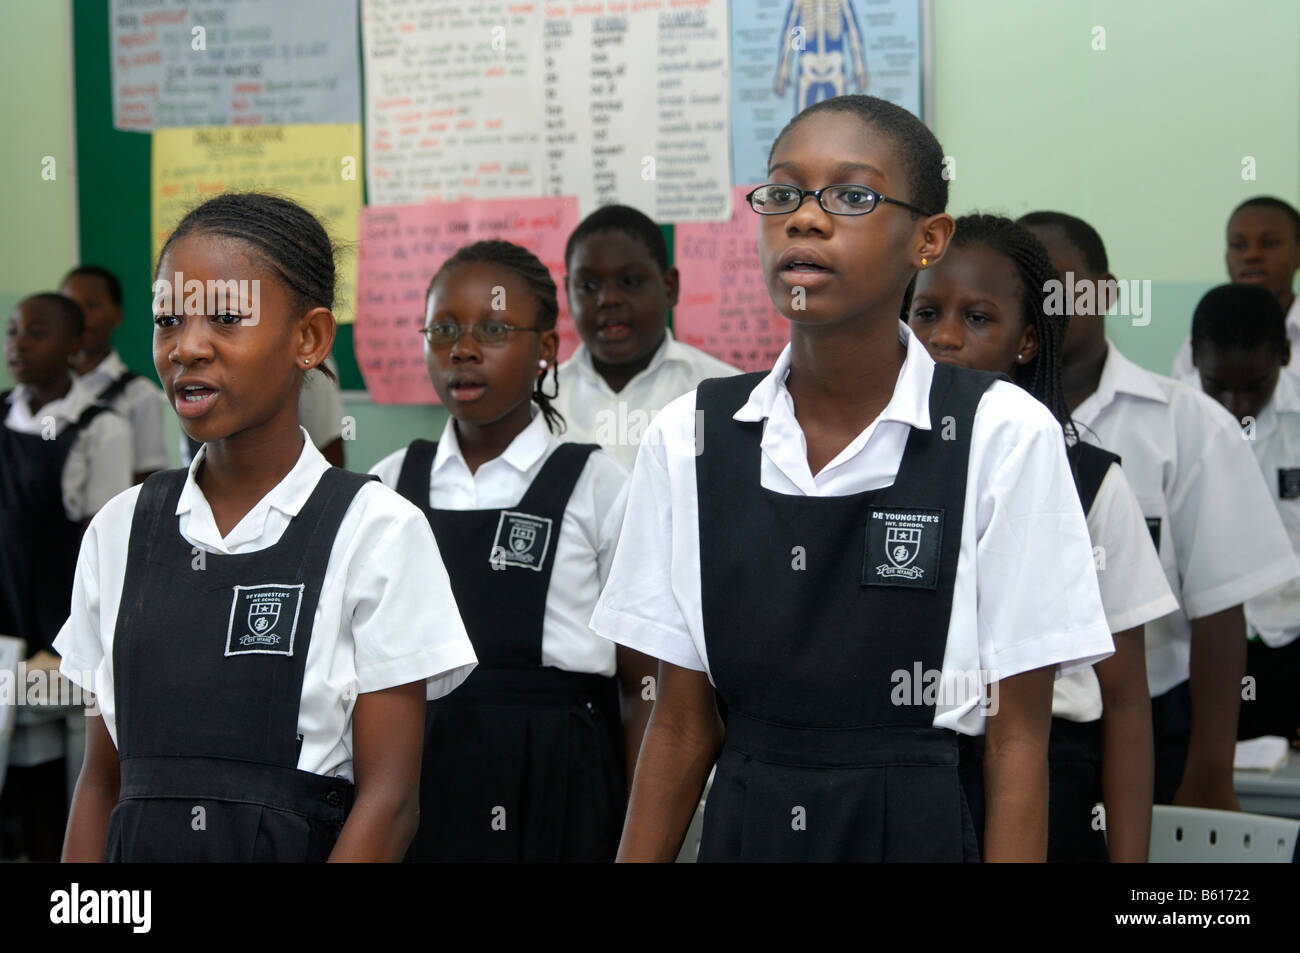 Pupils of the De Youngsters International School waiting for the beginning of the lesson, Accra, Ghana - Stock Image